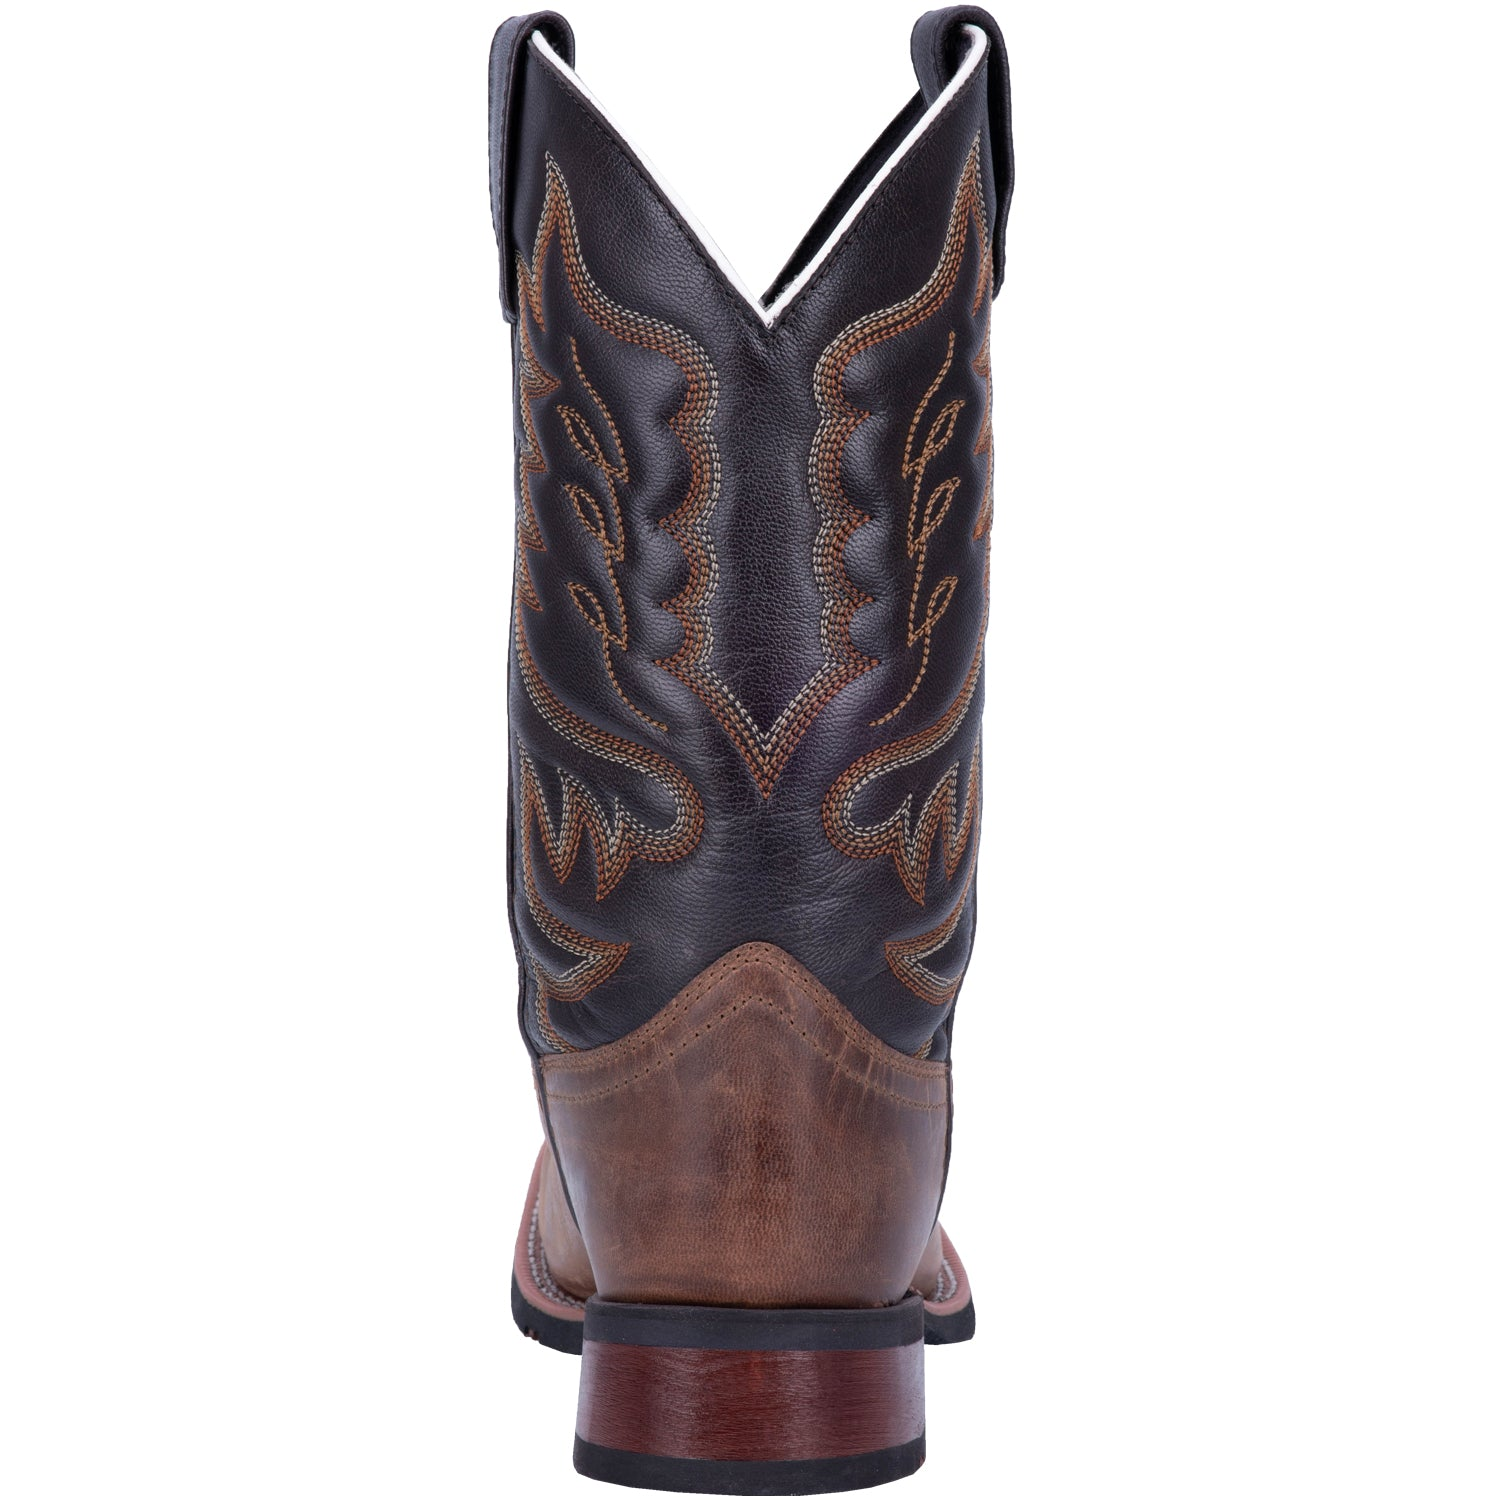 MONTANA LEATHER BOOT 4253953523754